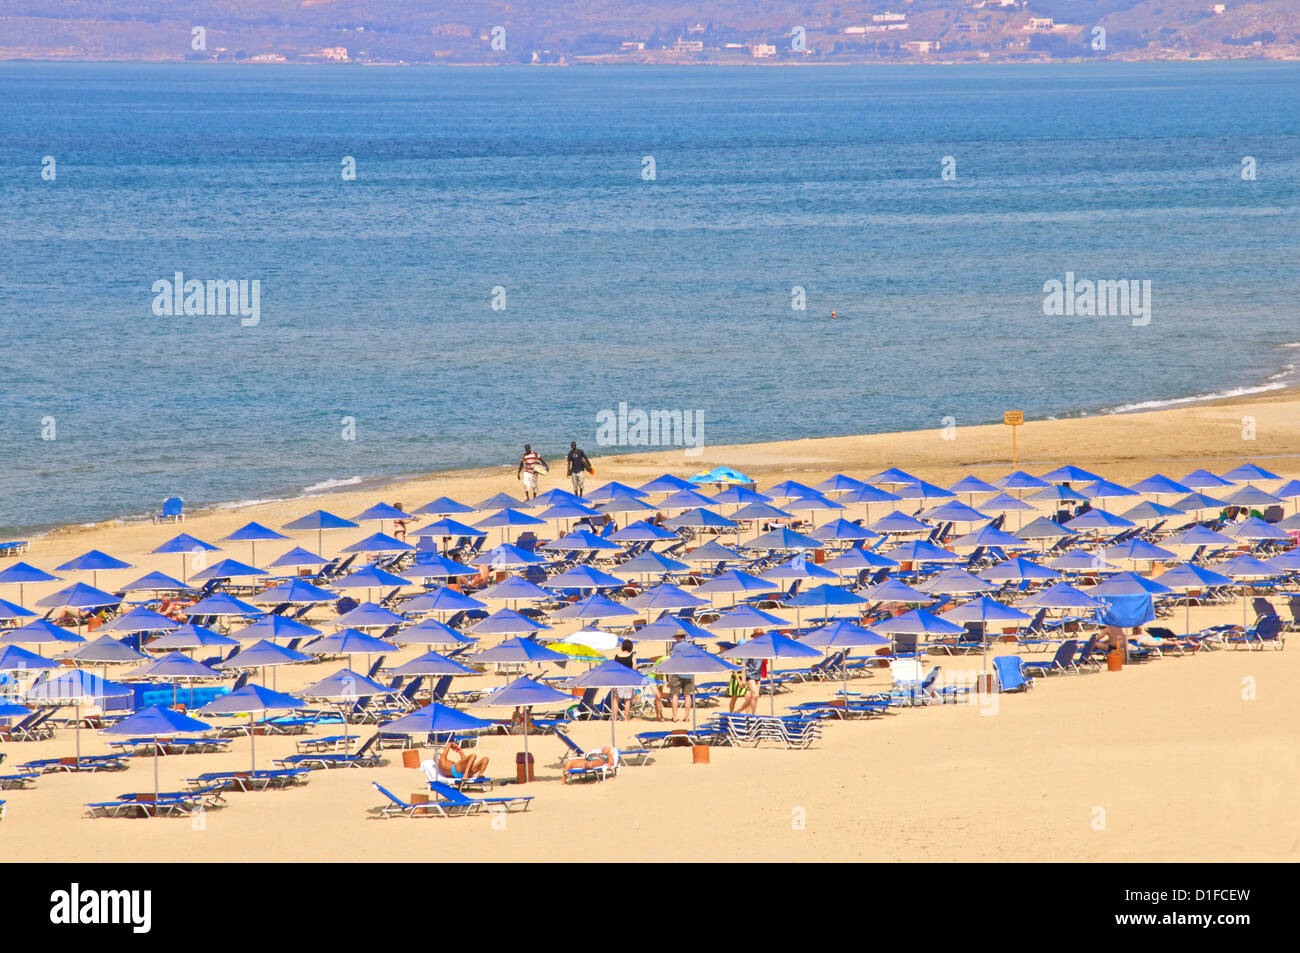 Beach and sunshades on beach at Giorgioupolis, Crete, Greek Islands, Greece, Europe - Stock Image